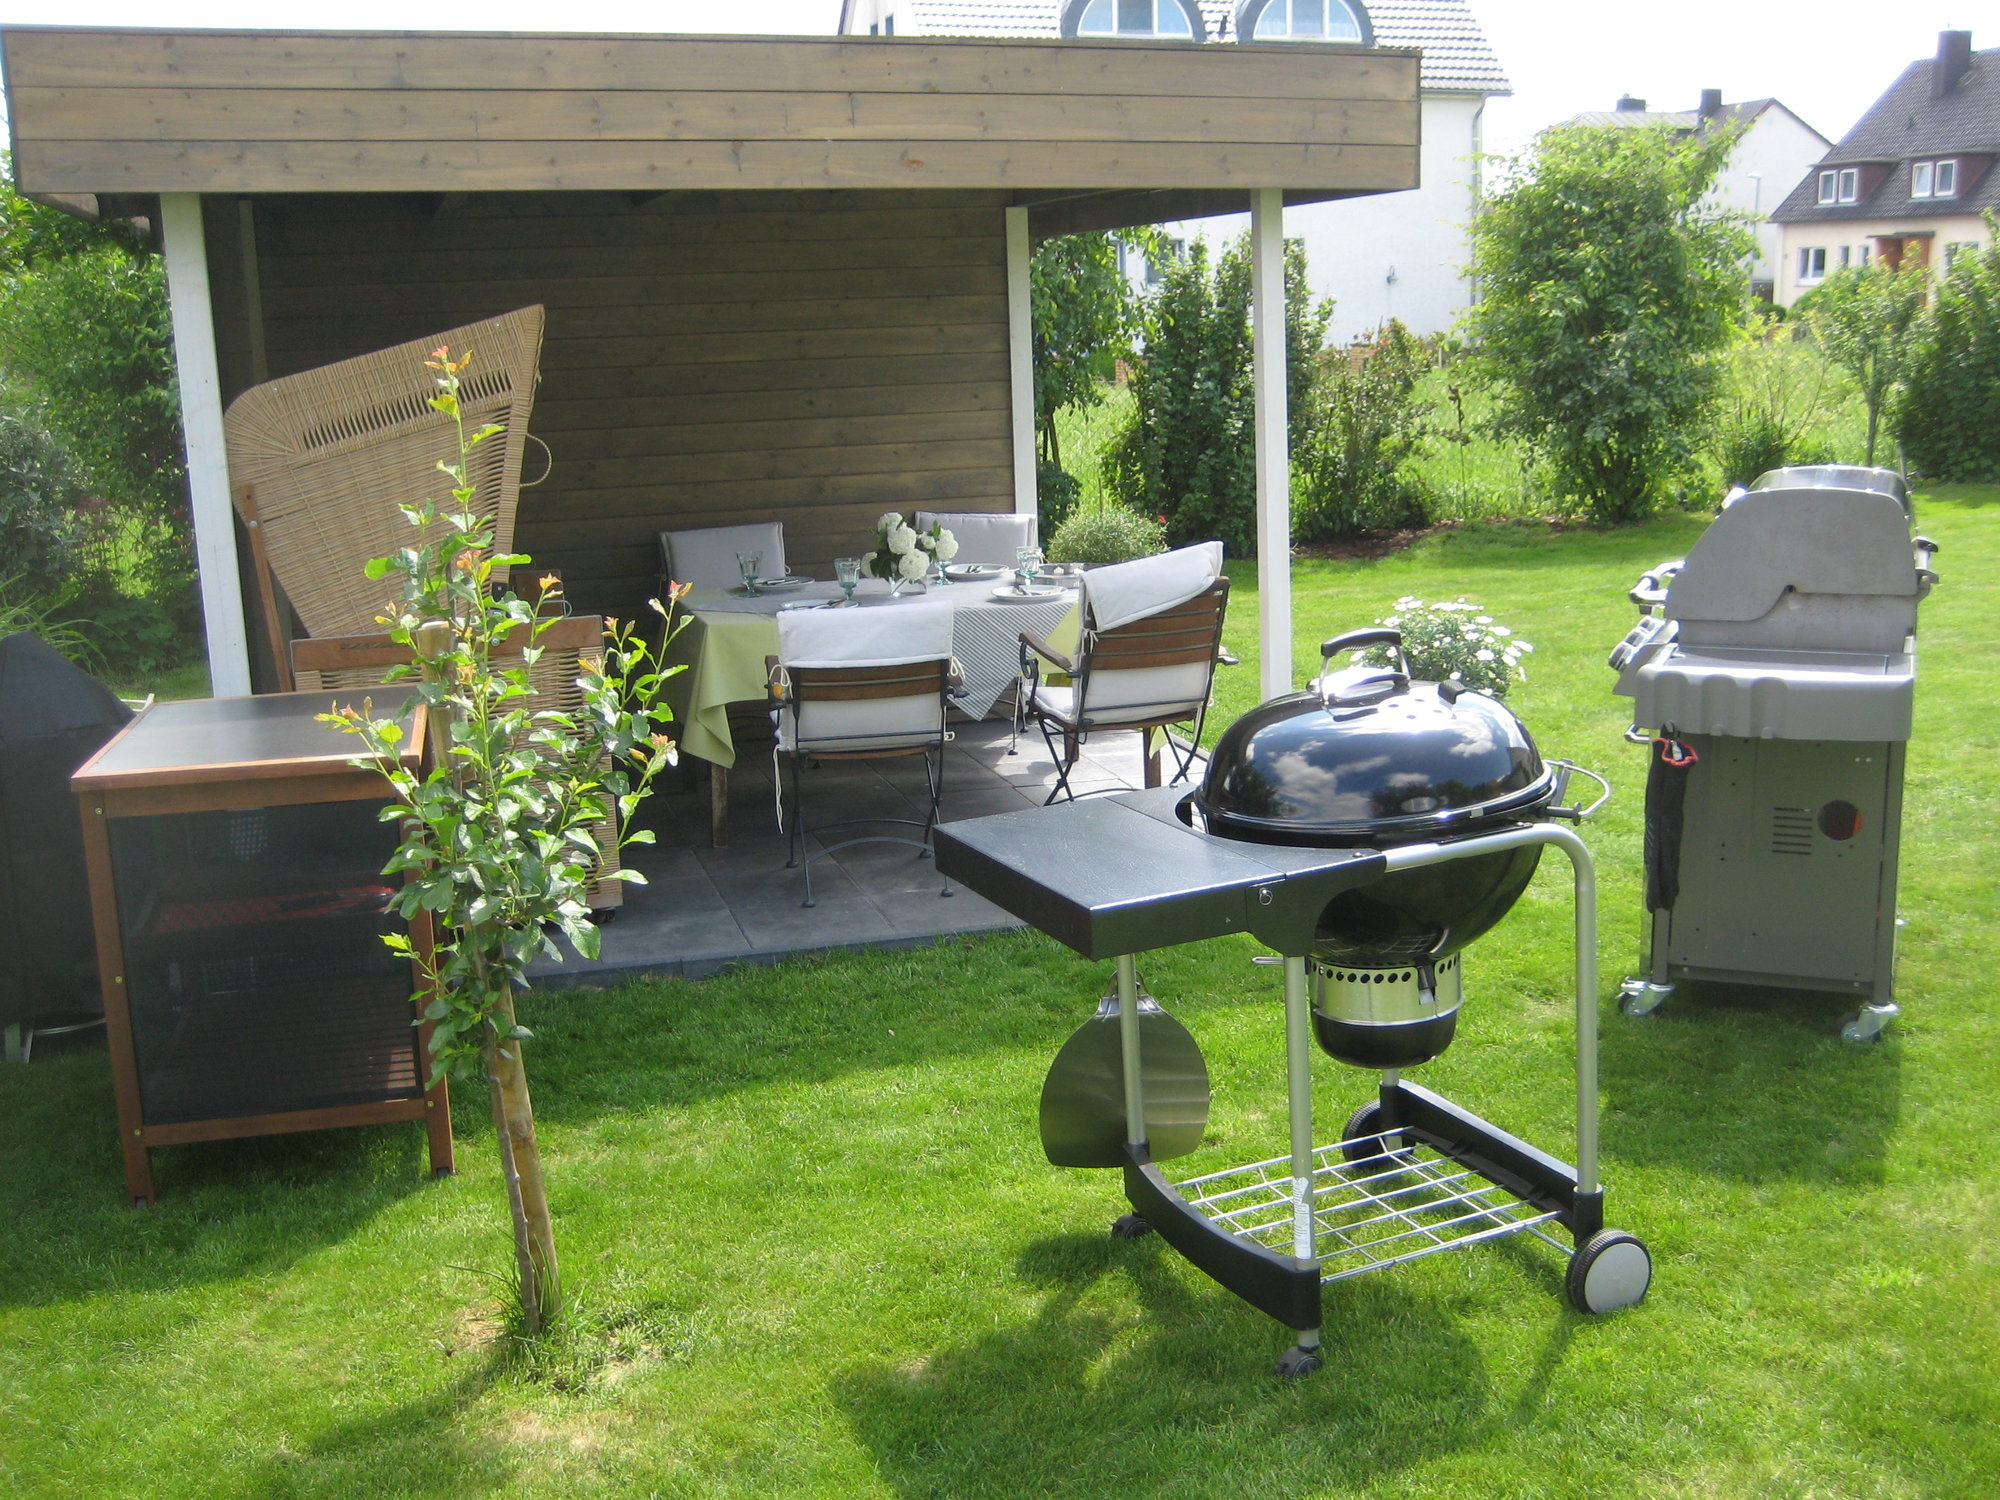 gartenhaus mit veranda als aussenk che grillforum und bbq. Black Bedroom Furniture Sets. Home Design Ideas